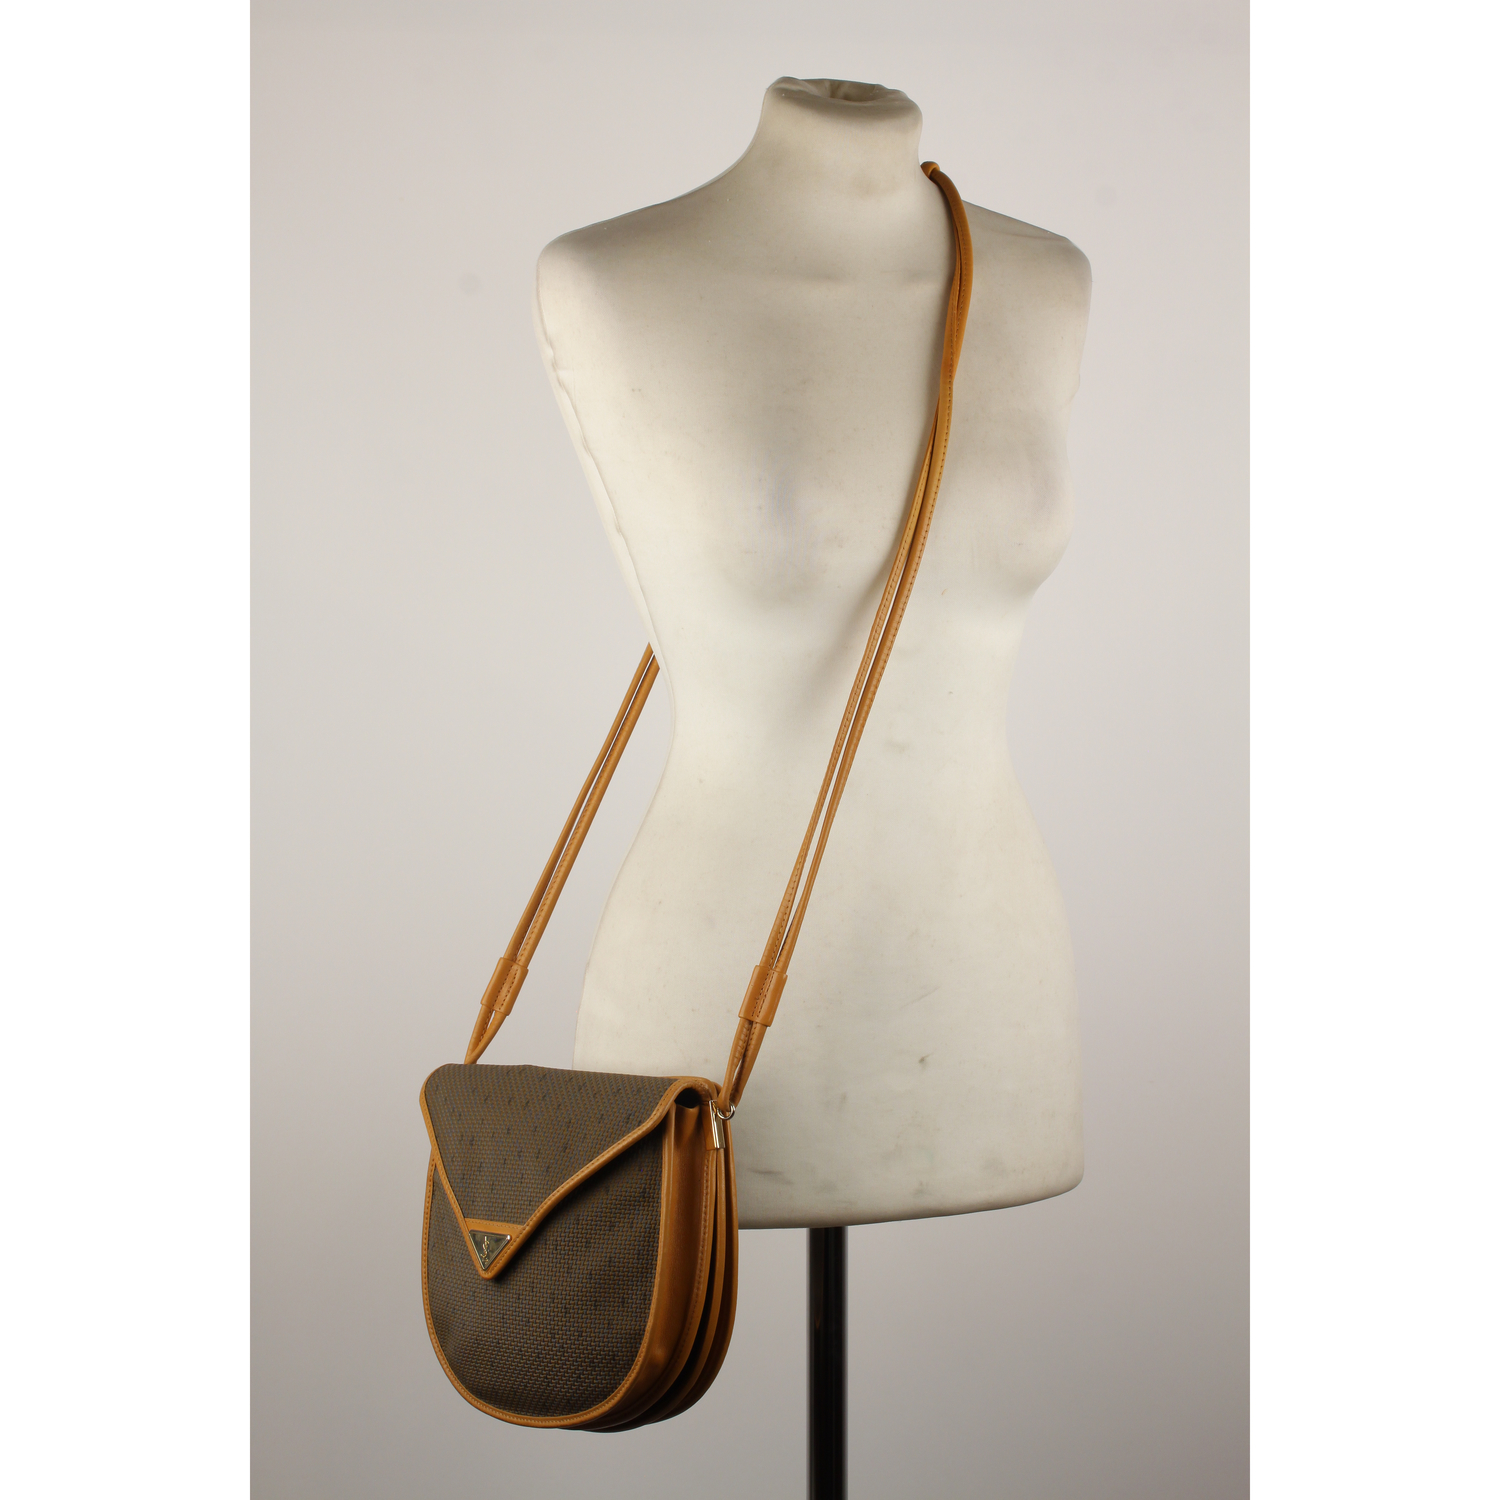 d43ee8ff Authentic Yves Saint Laurent Vintage Tan Textured Canvas Crossbody ...